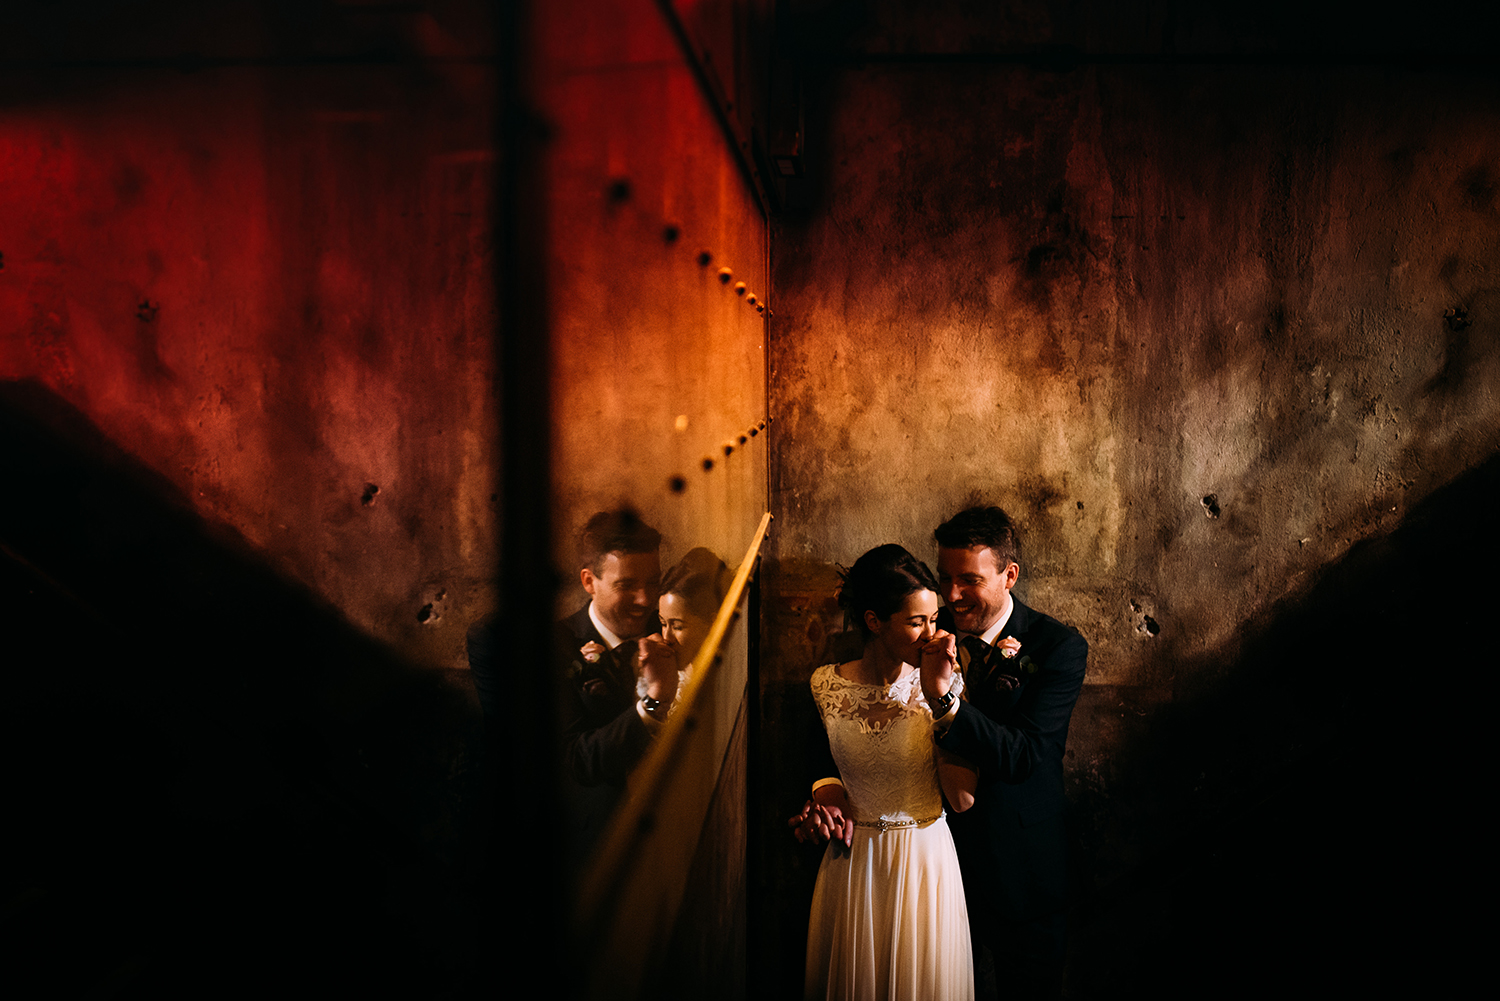 couple photo in a corner of the industrial room. Bride kissing grooms hand